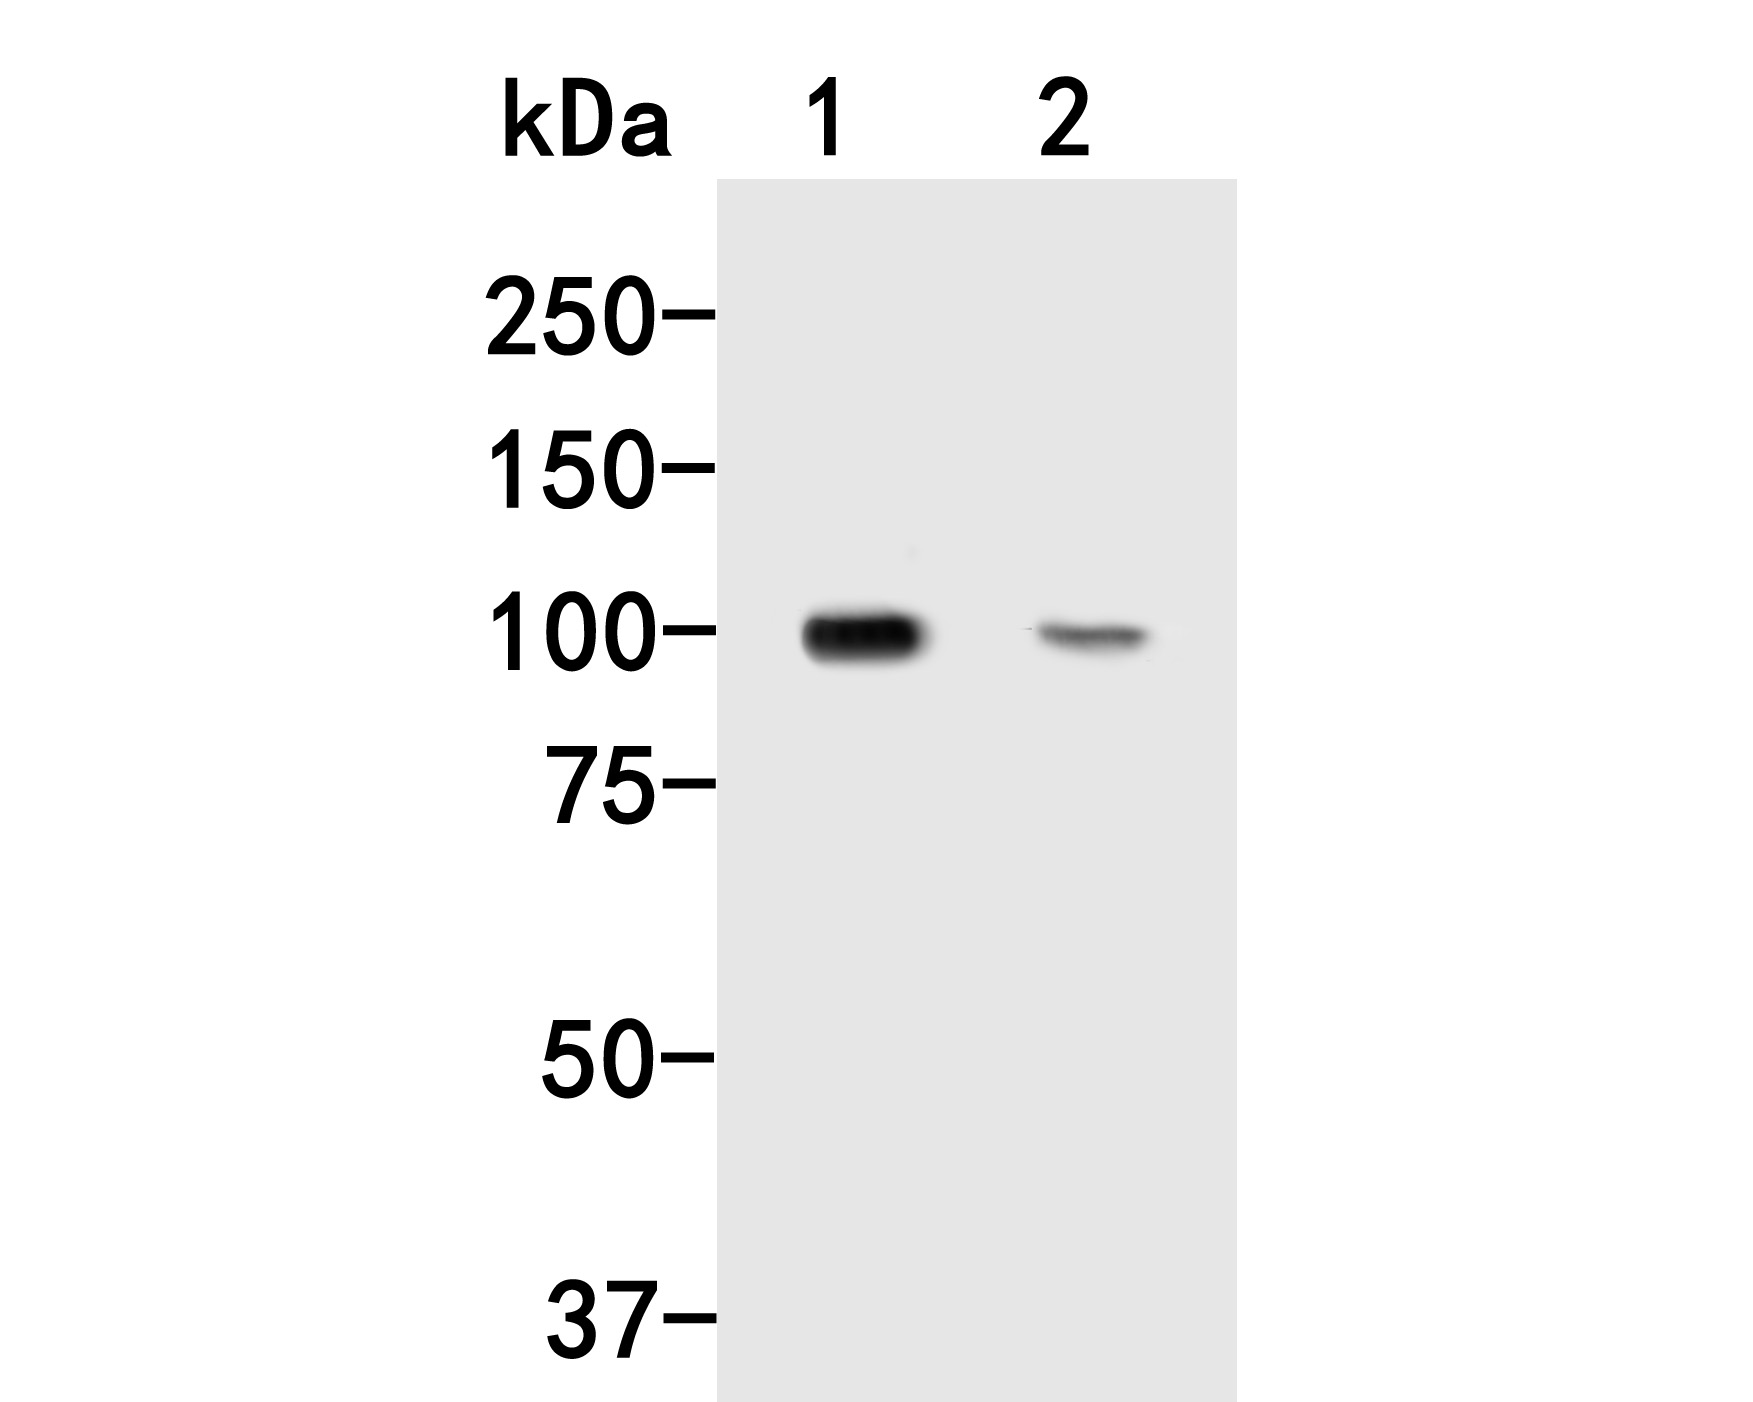 Western blot analysis of Dynamin 3 on different lysates. Proteins were transferred to a PVDF membrane and blocked with 5% BSA in PBS for 1 hour at room temperature. The primary antibody (HA500032, 1/500) was used in 5% BSA at room temperature for 2 hours. Goat Anti-Rabbit IgG - HRP Secondary Antibody (HA1001) at 1:5,000 dilution was used for 1 hour at room temperature.<br /> Positive control: <br /> Lane 1: Rat brain tissue lysate<br /> Lane 2: NIH/3T3 cell lysate